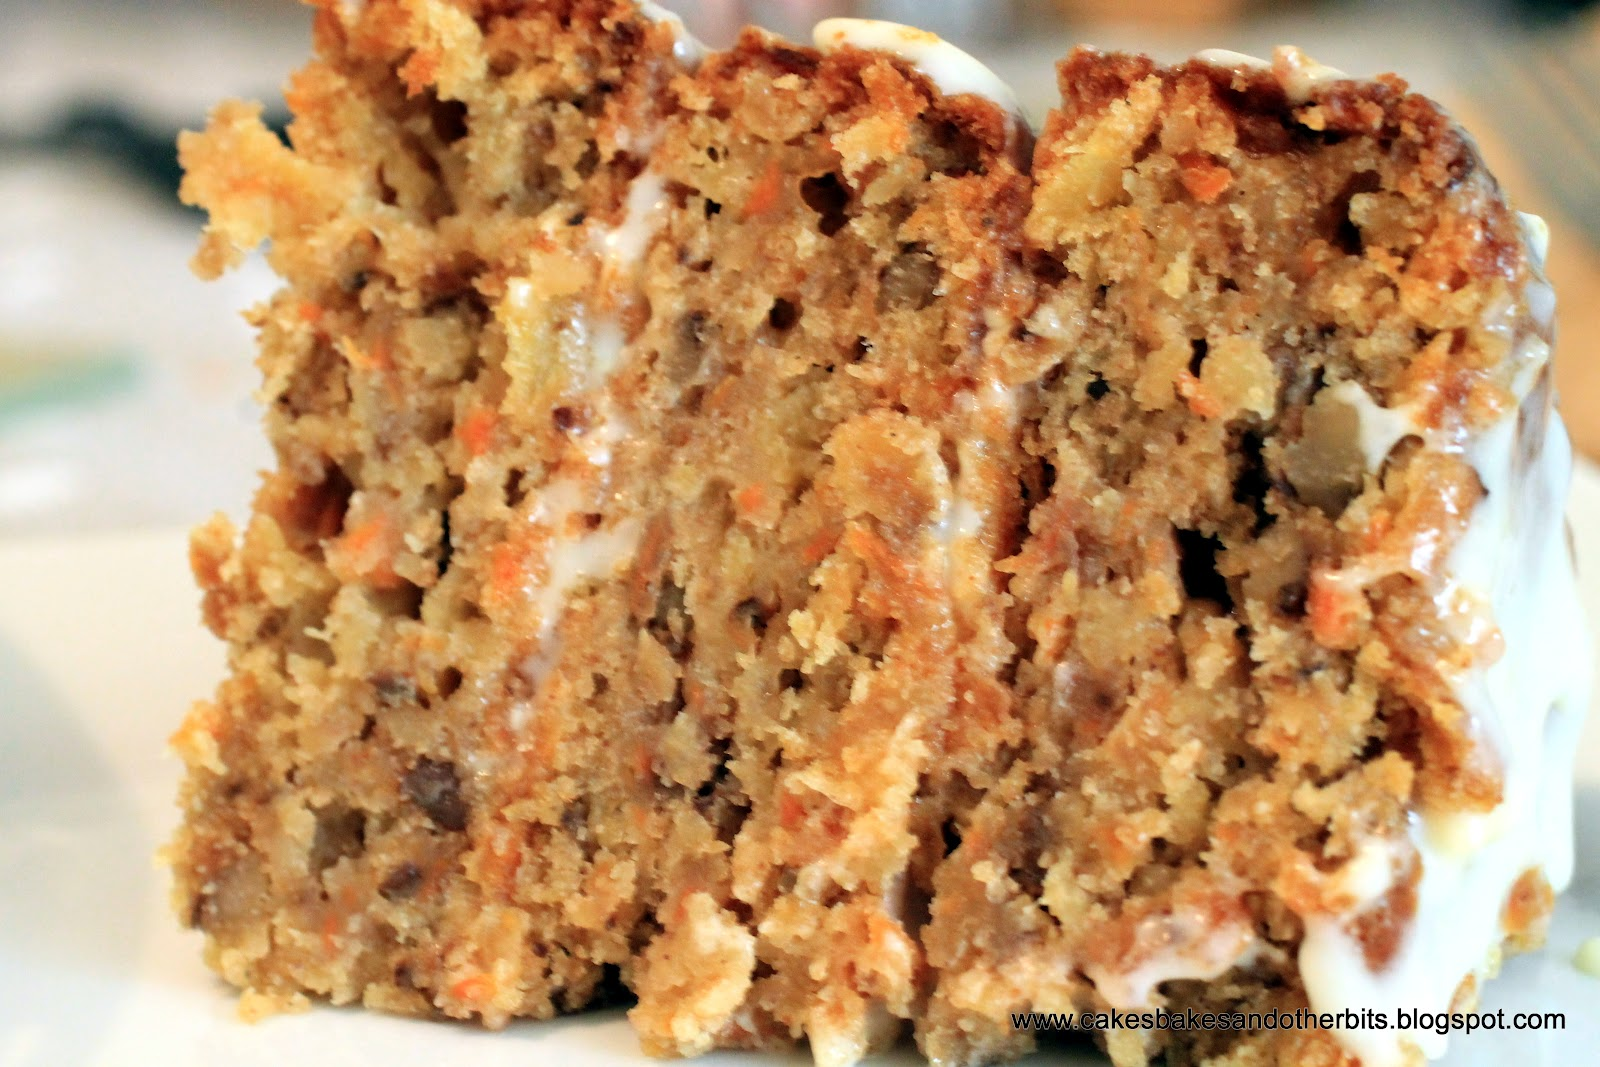 Cakes, Bakes, & Other Bits: Carrot, Pineapple, and Walnut Cake